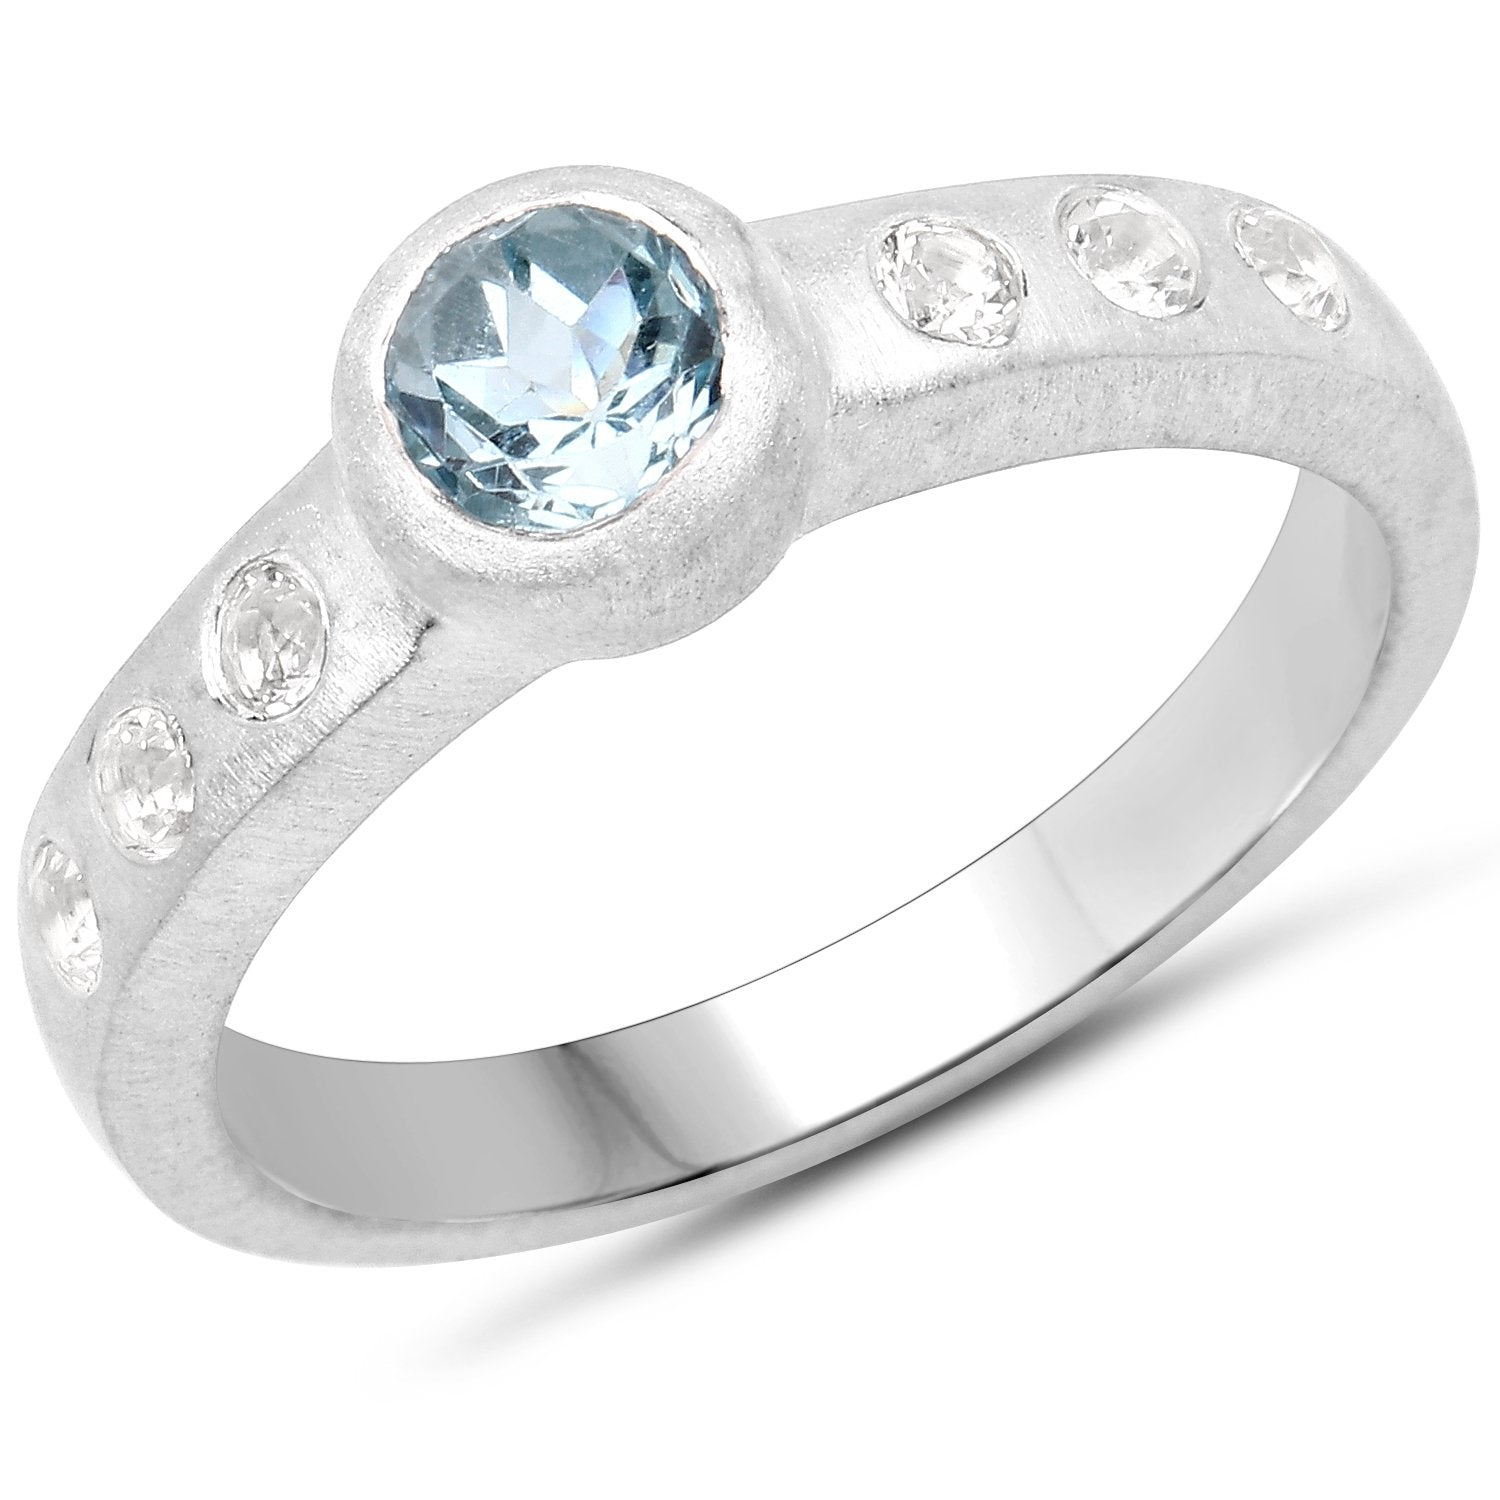 LoveHuang 0.76 Carats Genuine Blue Topaz and White Topaz Matte Finish Ring Solid .925 Sterling Silver With Rhodium Plating